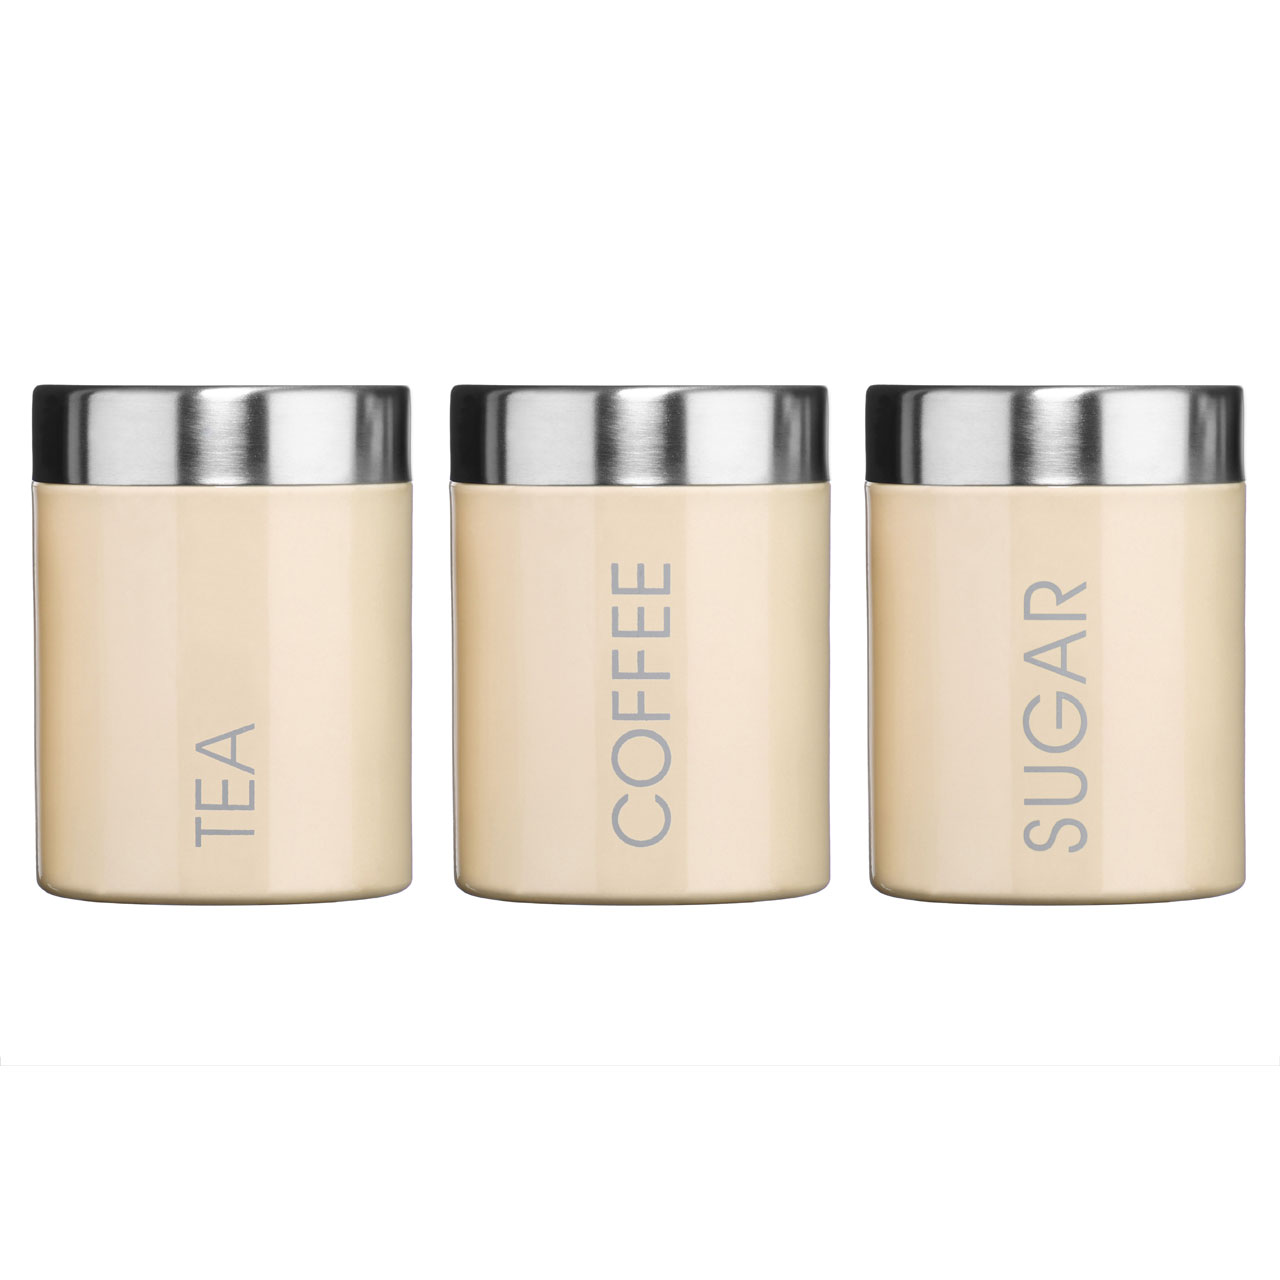 Set-of-3-Tea-Coffee-Sugar-Canisters-Kitchen-Storage-Containers-Jars-Pots